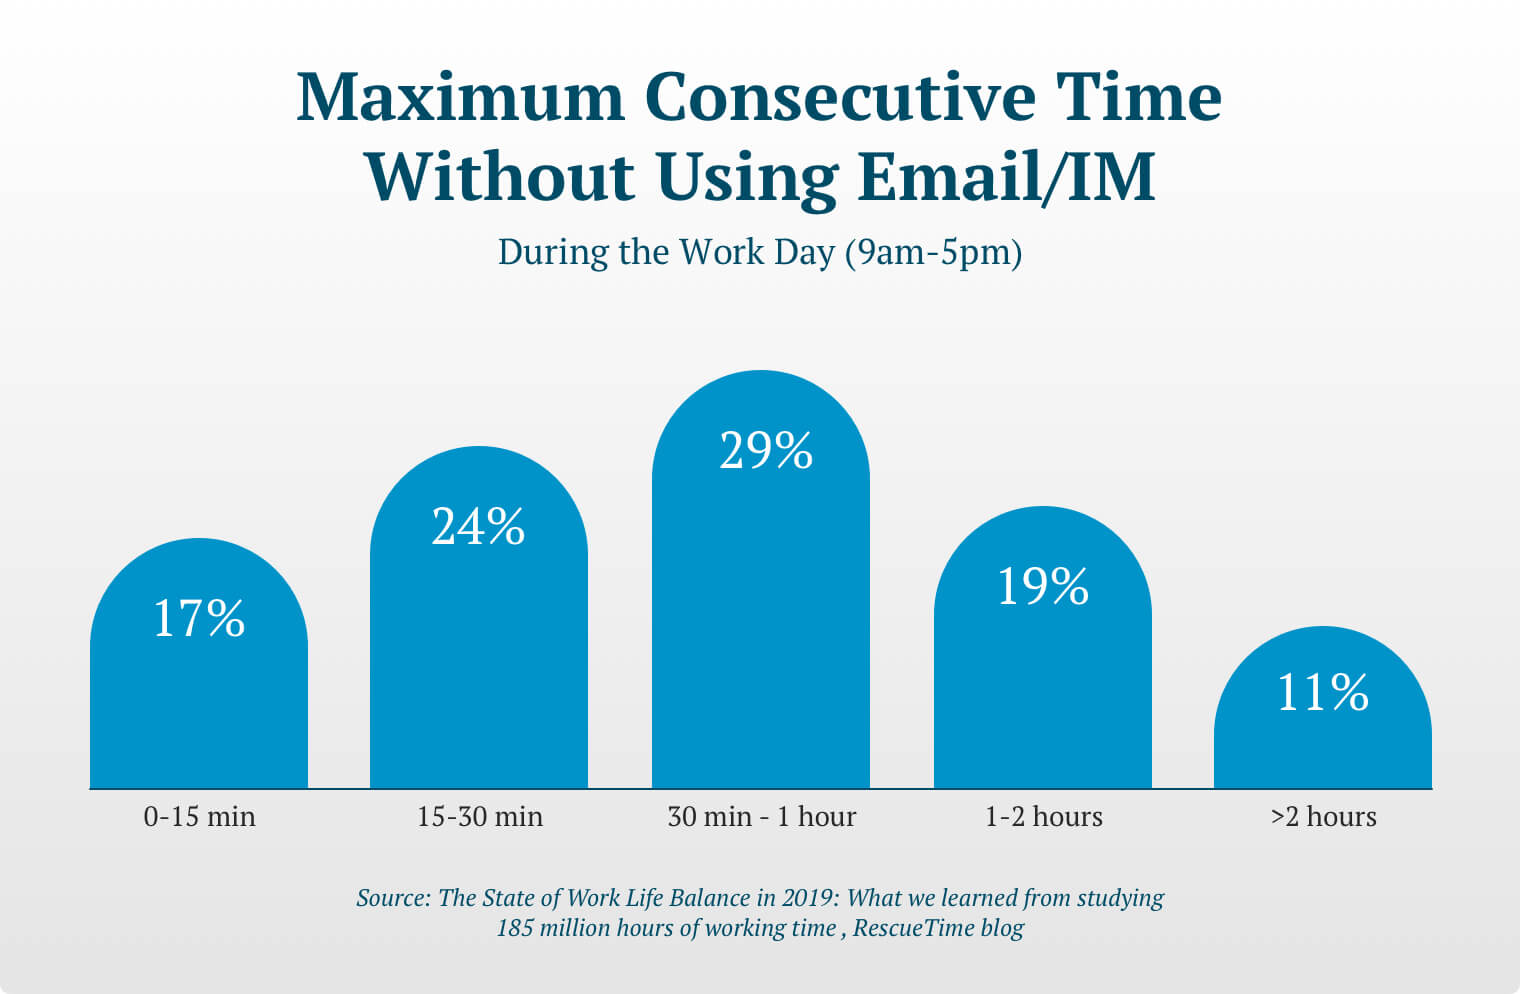 "A bar graph titled ""Maximum Consecutive Time Without Using Email/IM During the Workday (9am-5pm).  The graph illustrates the following: 17% of those surveyed managed to avoid email or IM interruptions for a maximum of 0-15 minutes during their work day; 24% had uninterrupted periods of between 15 and 30 minutes. 29% achieved uninterrupted status for 30 minutes to 1 hour. 19% avoided emails or IM for a sustained 1 to 2 hours. And 11% enjoyed 2 or more hours of consecutive uninterrupted time."